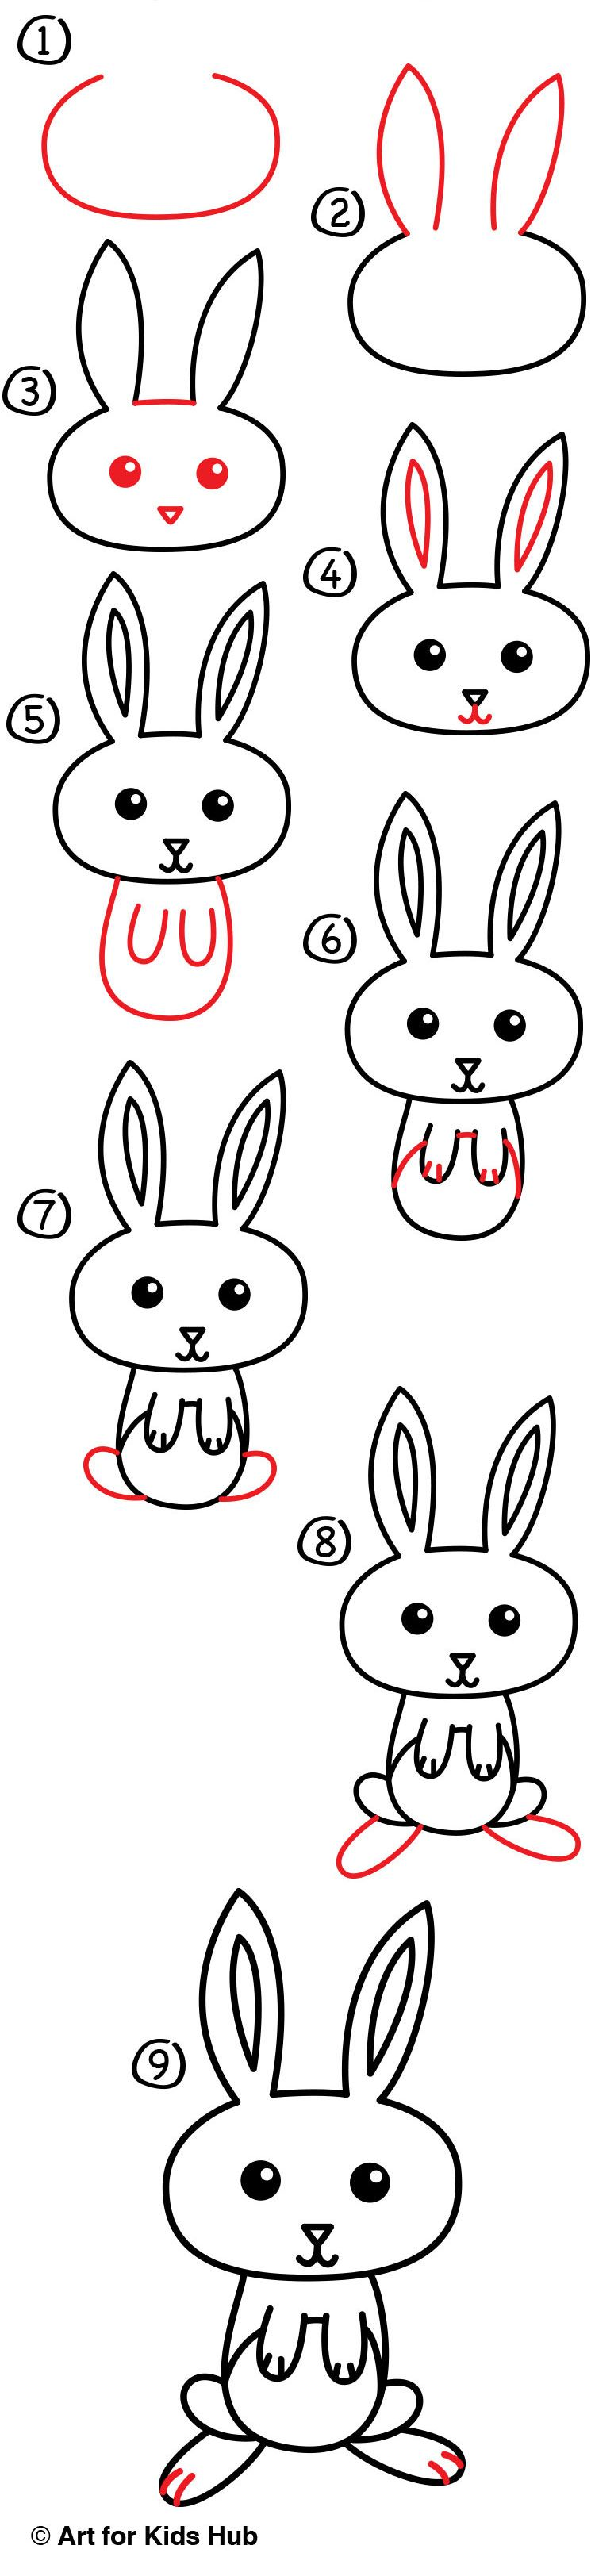 How To Draw A Cartoon Easter Bunny Art For Kids Hub Art For Kids Hub Bunny Art Bunny Drawing